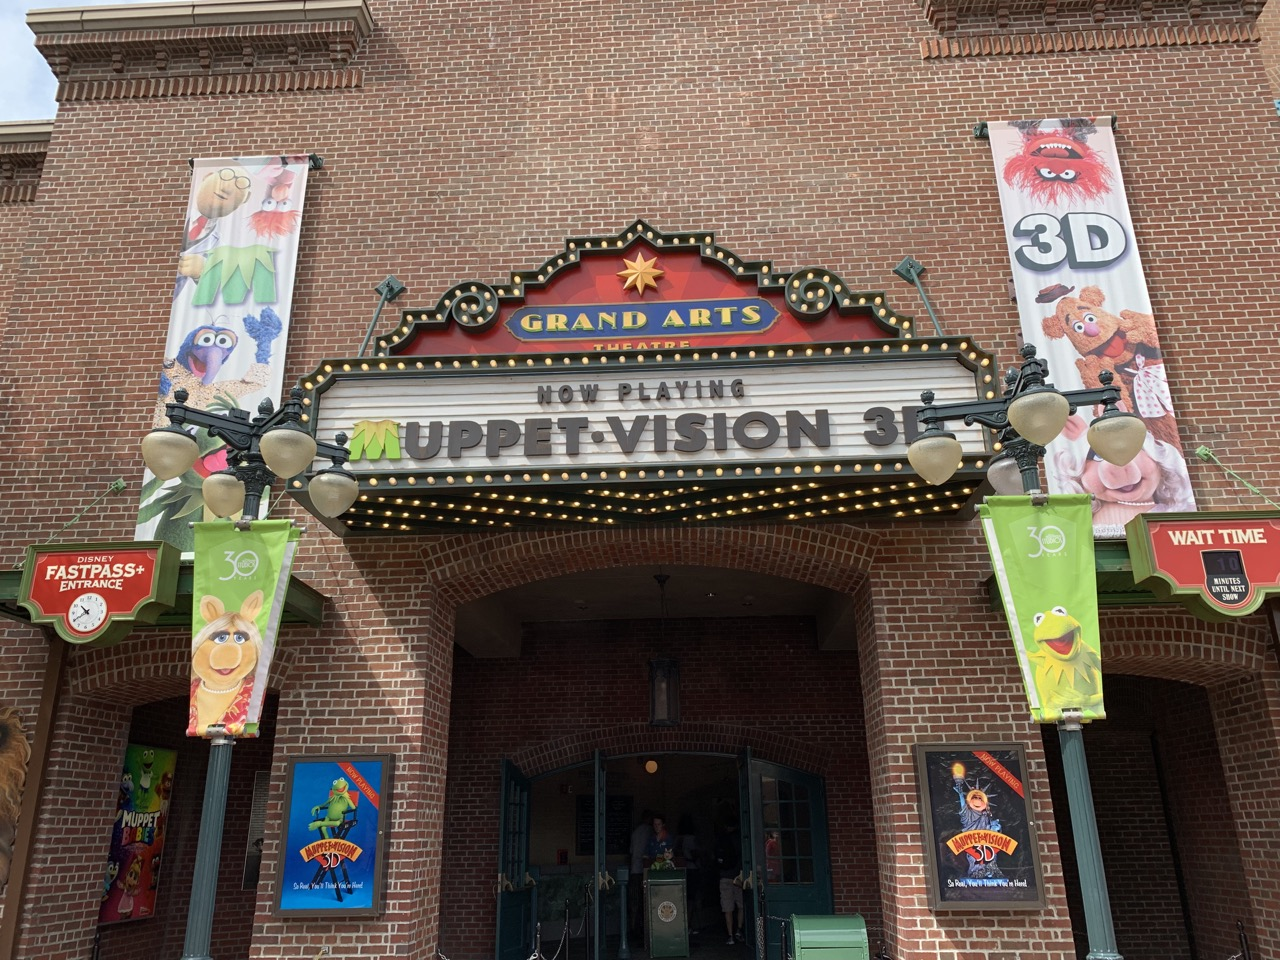 disney world trip report early summer 2019 day two 40 muppet vision.jpeg